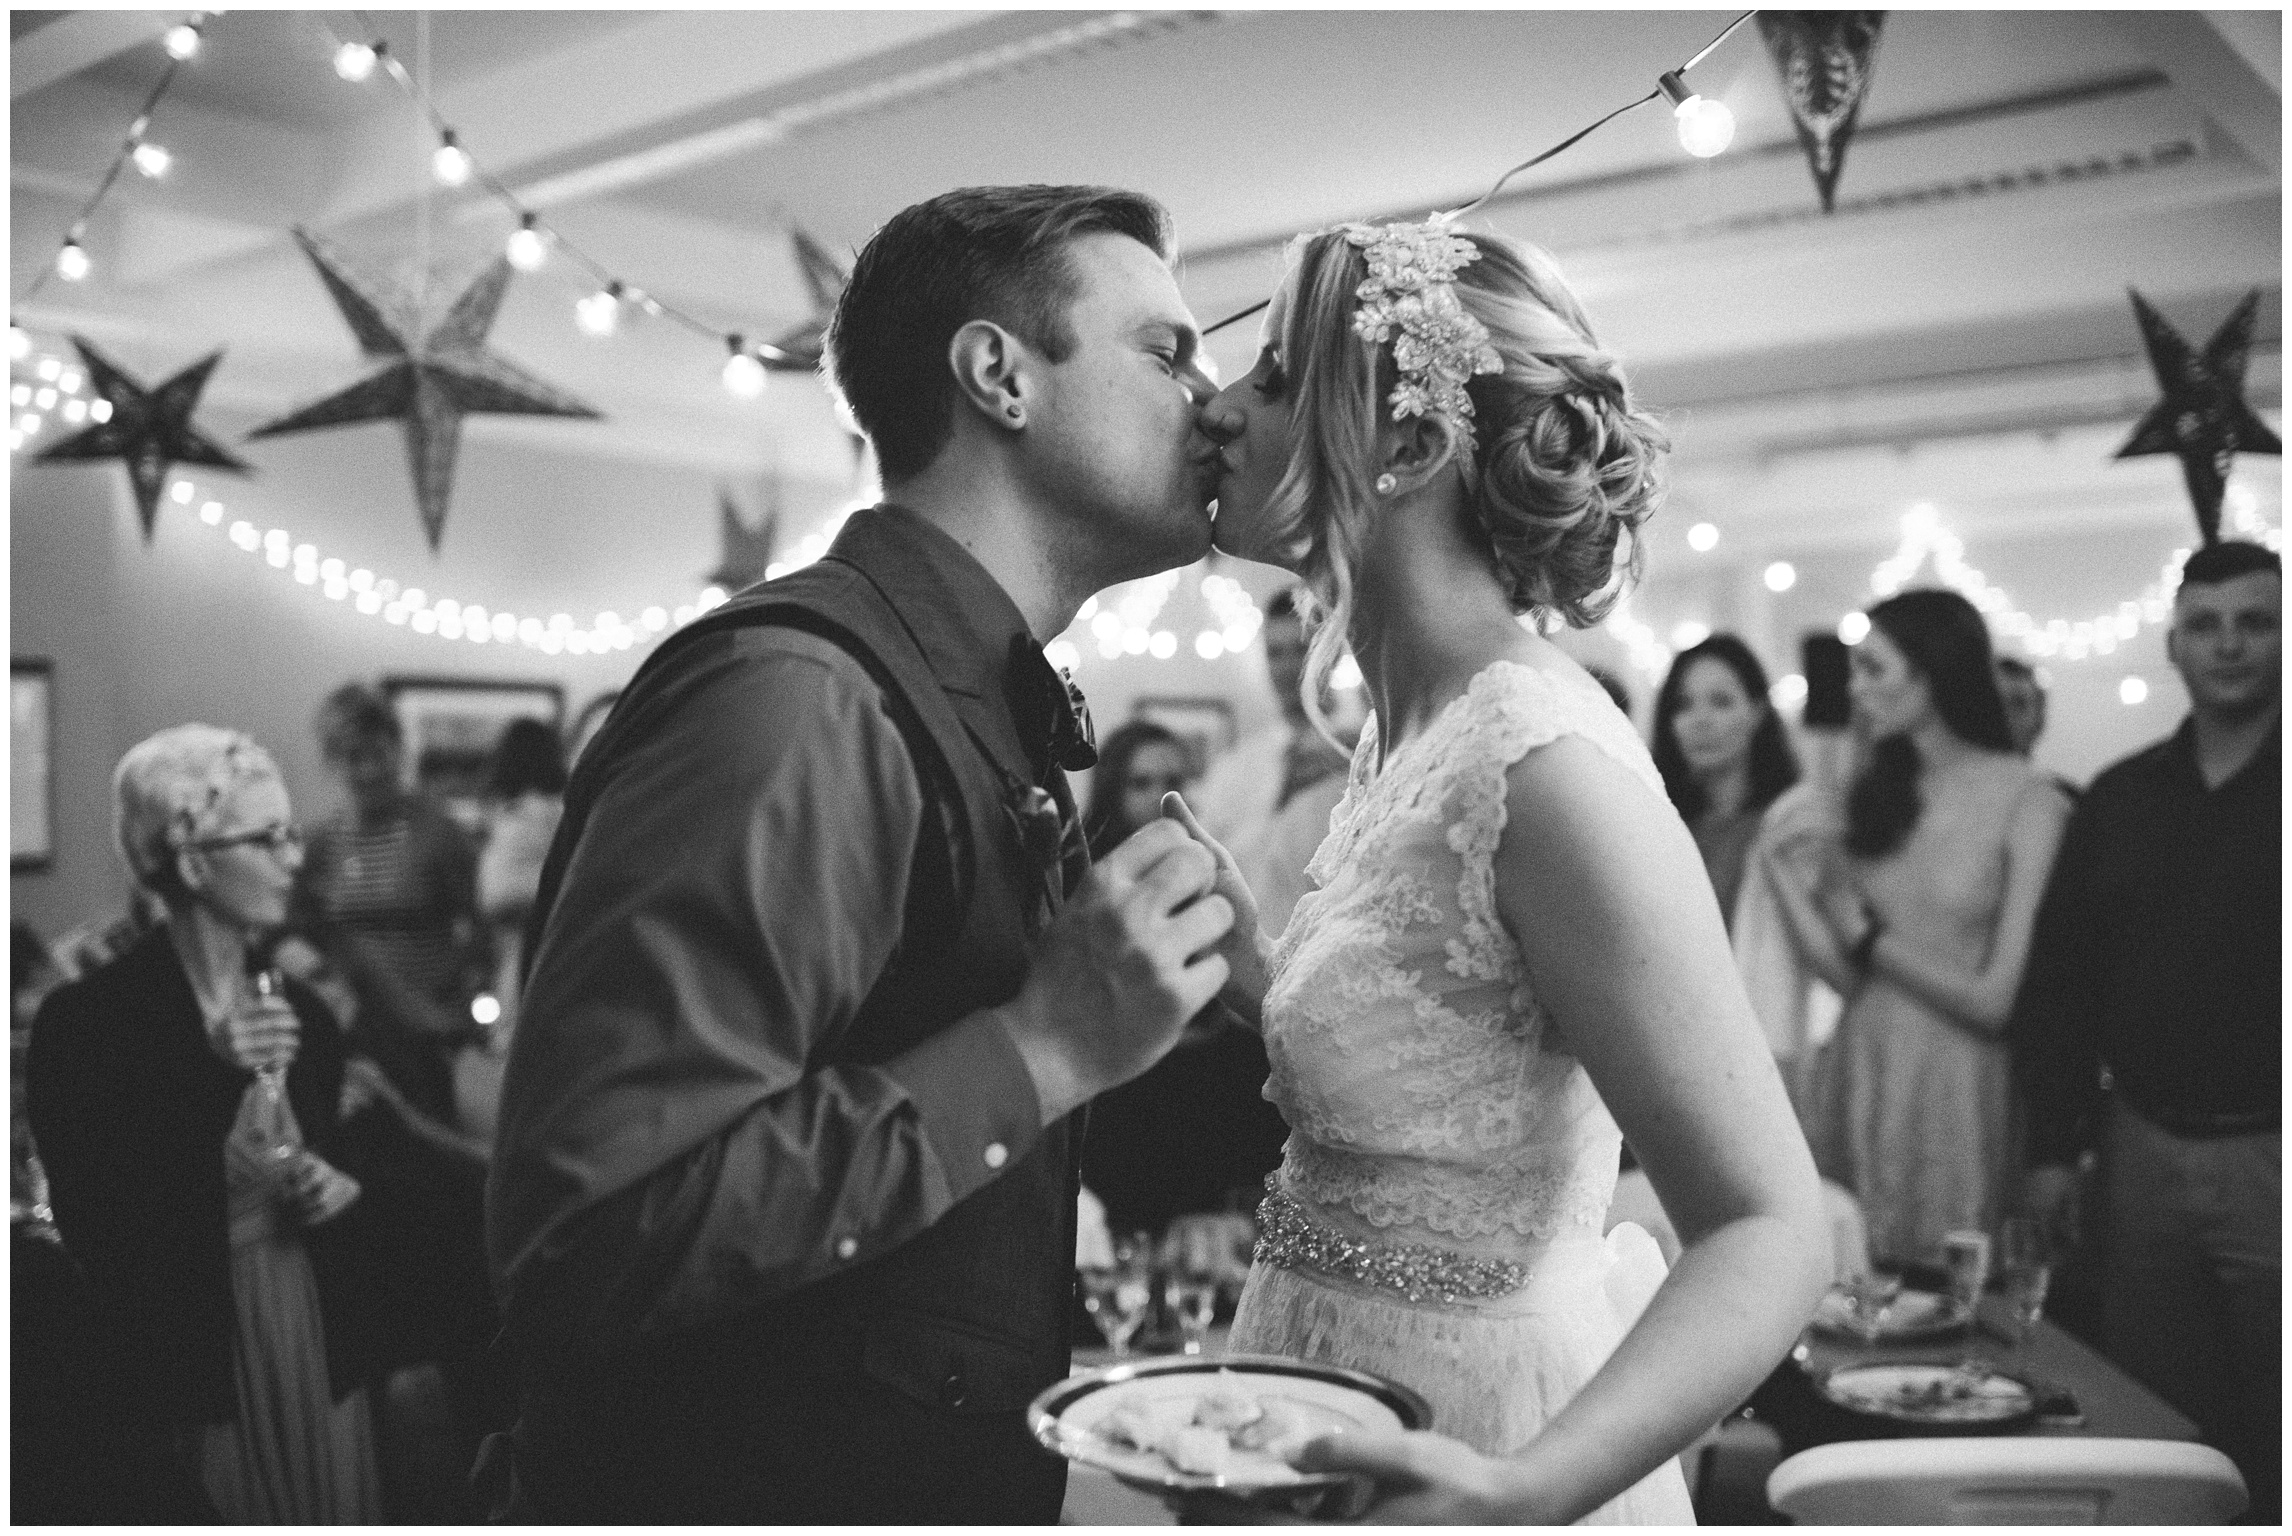 A bride and groom kiss in a black and white photograph. Wedding photography by Sonja Salzburg of Sonja K Photography.